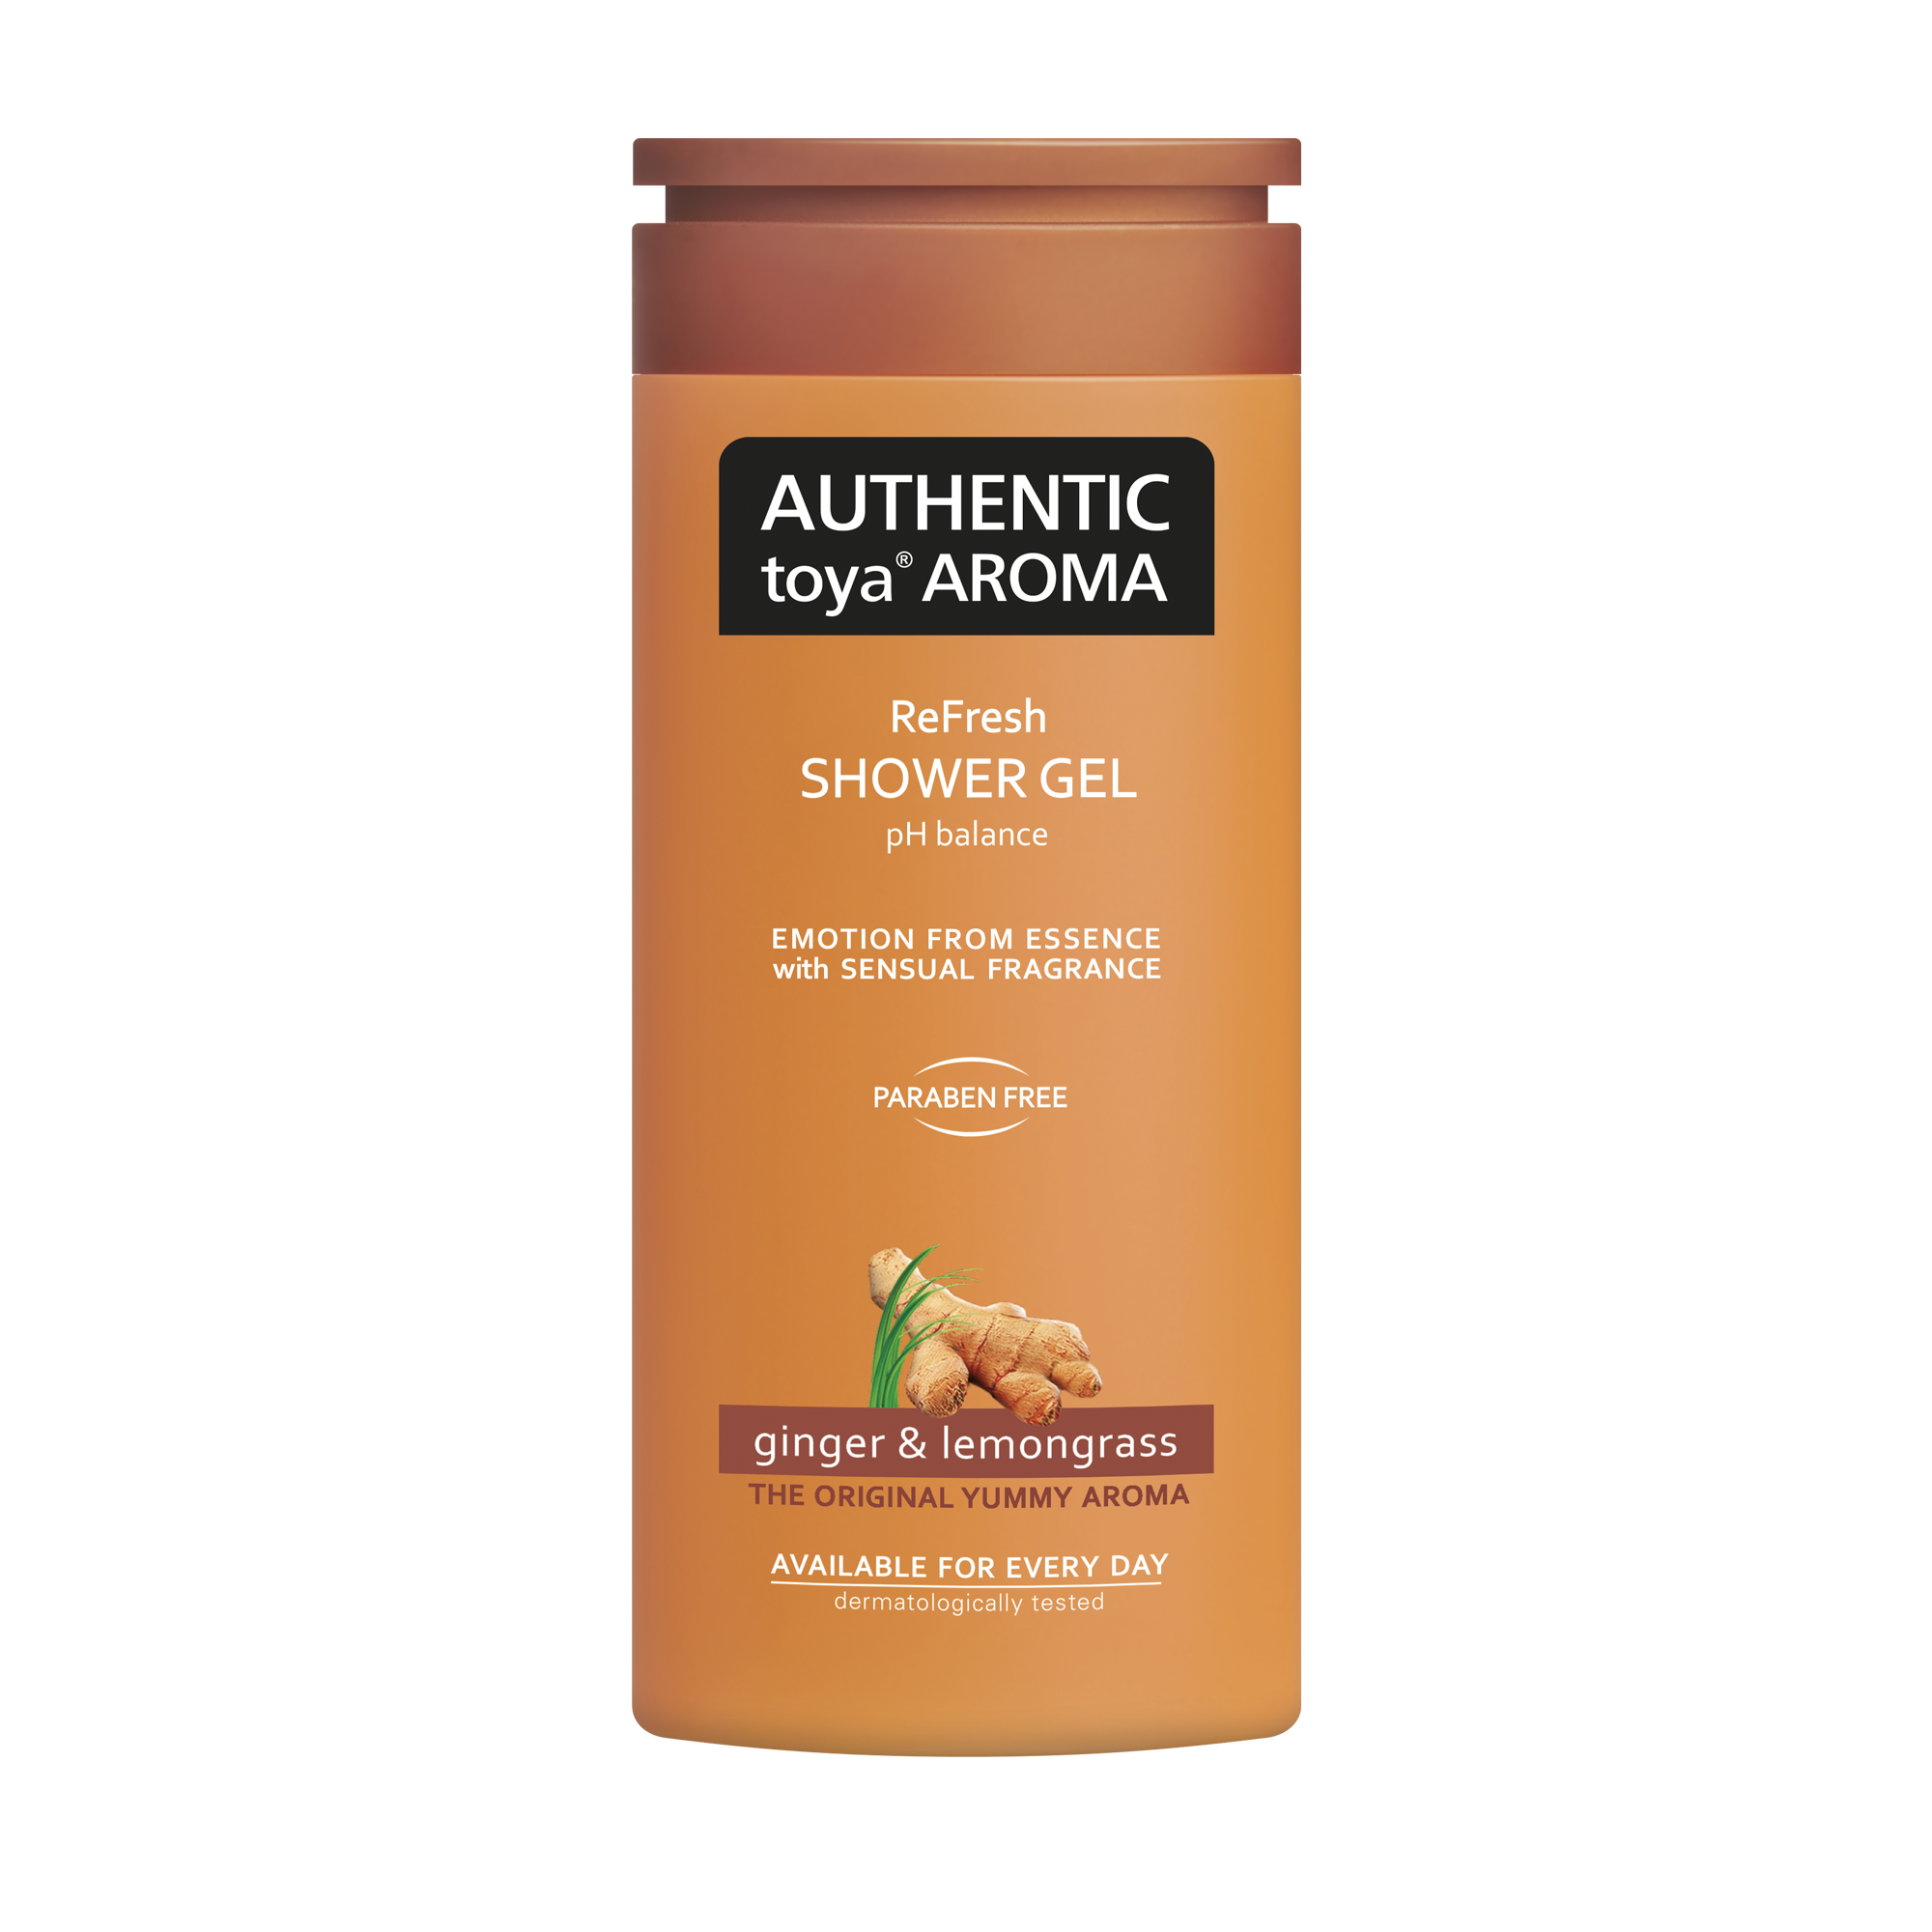 AUTHENTIC toya AROMA ginger & lemongrass shower gel